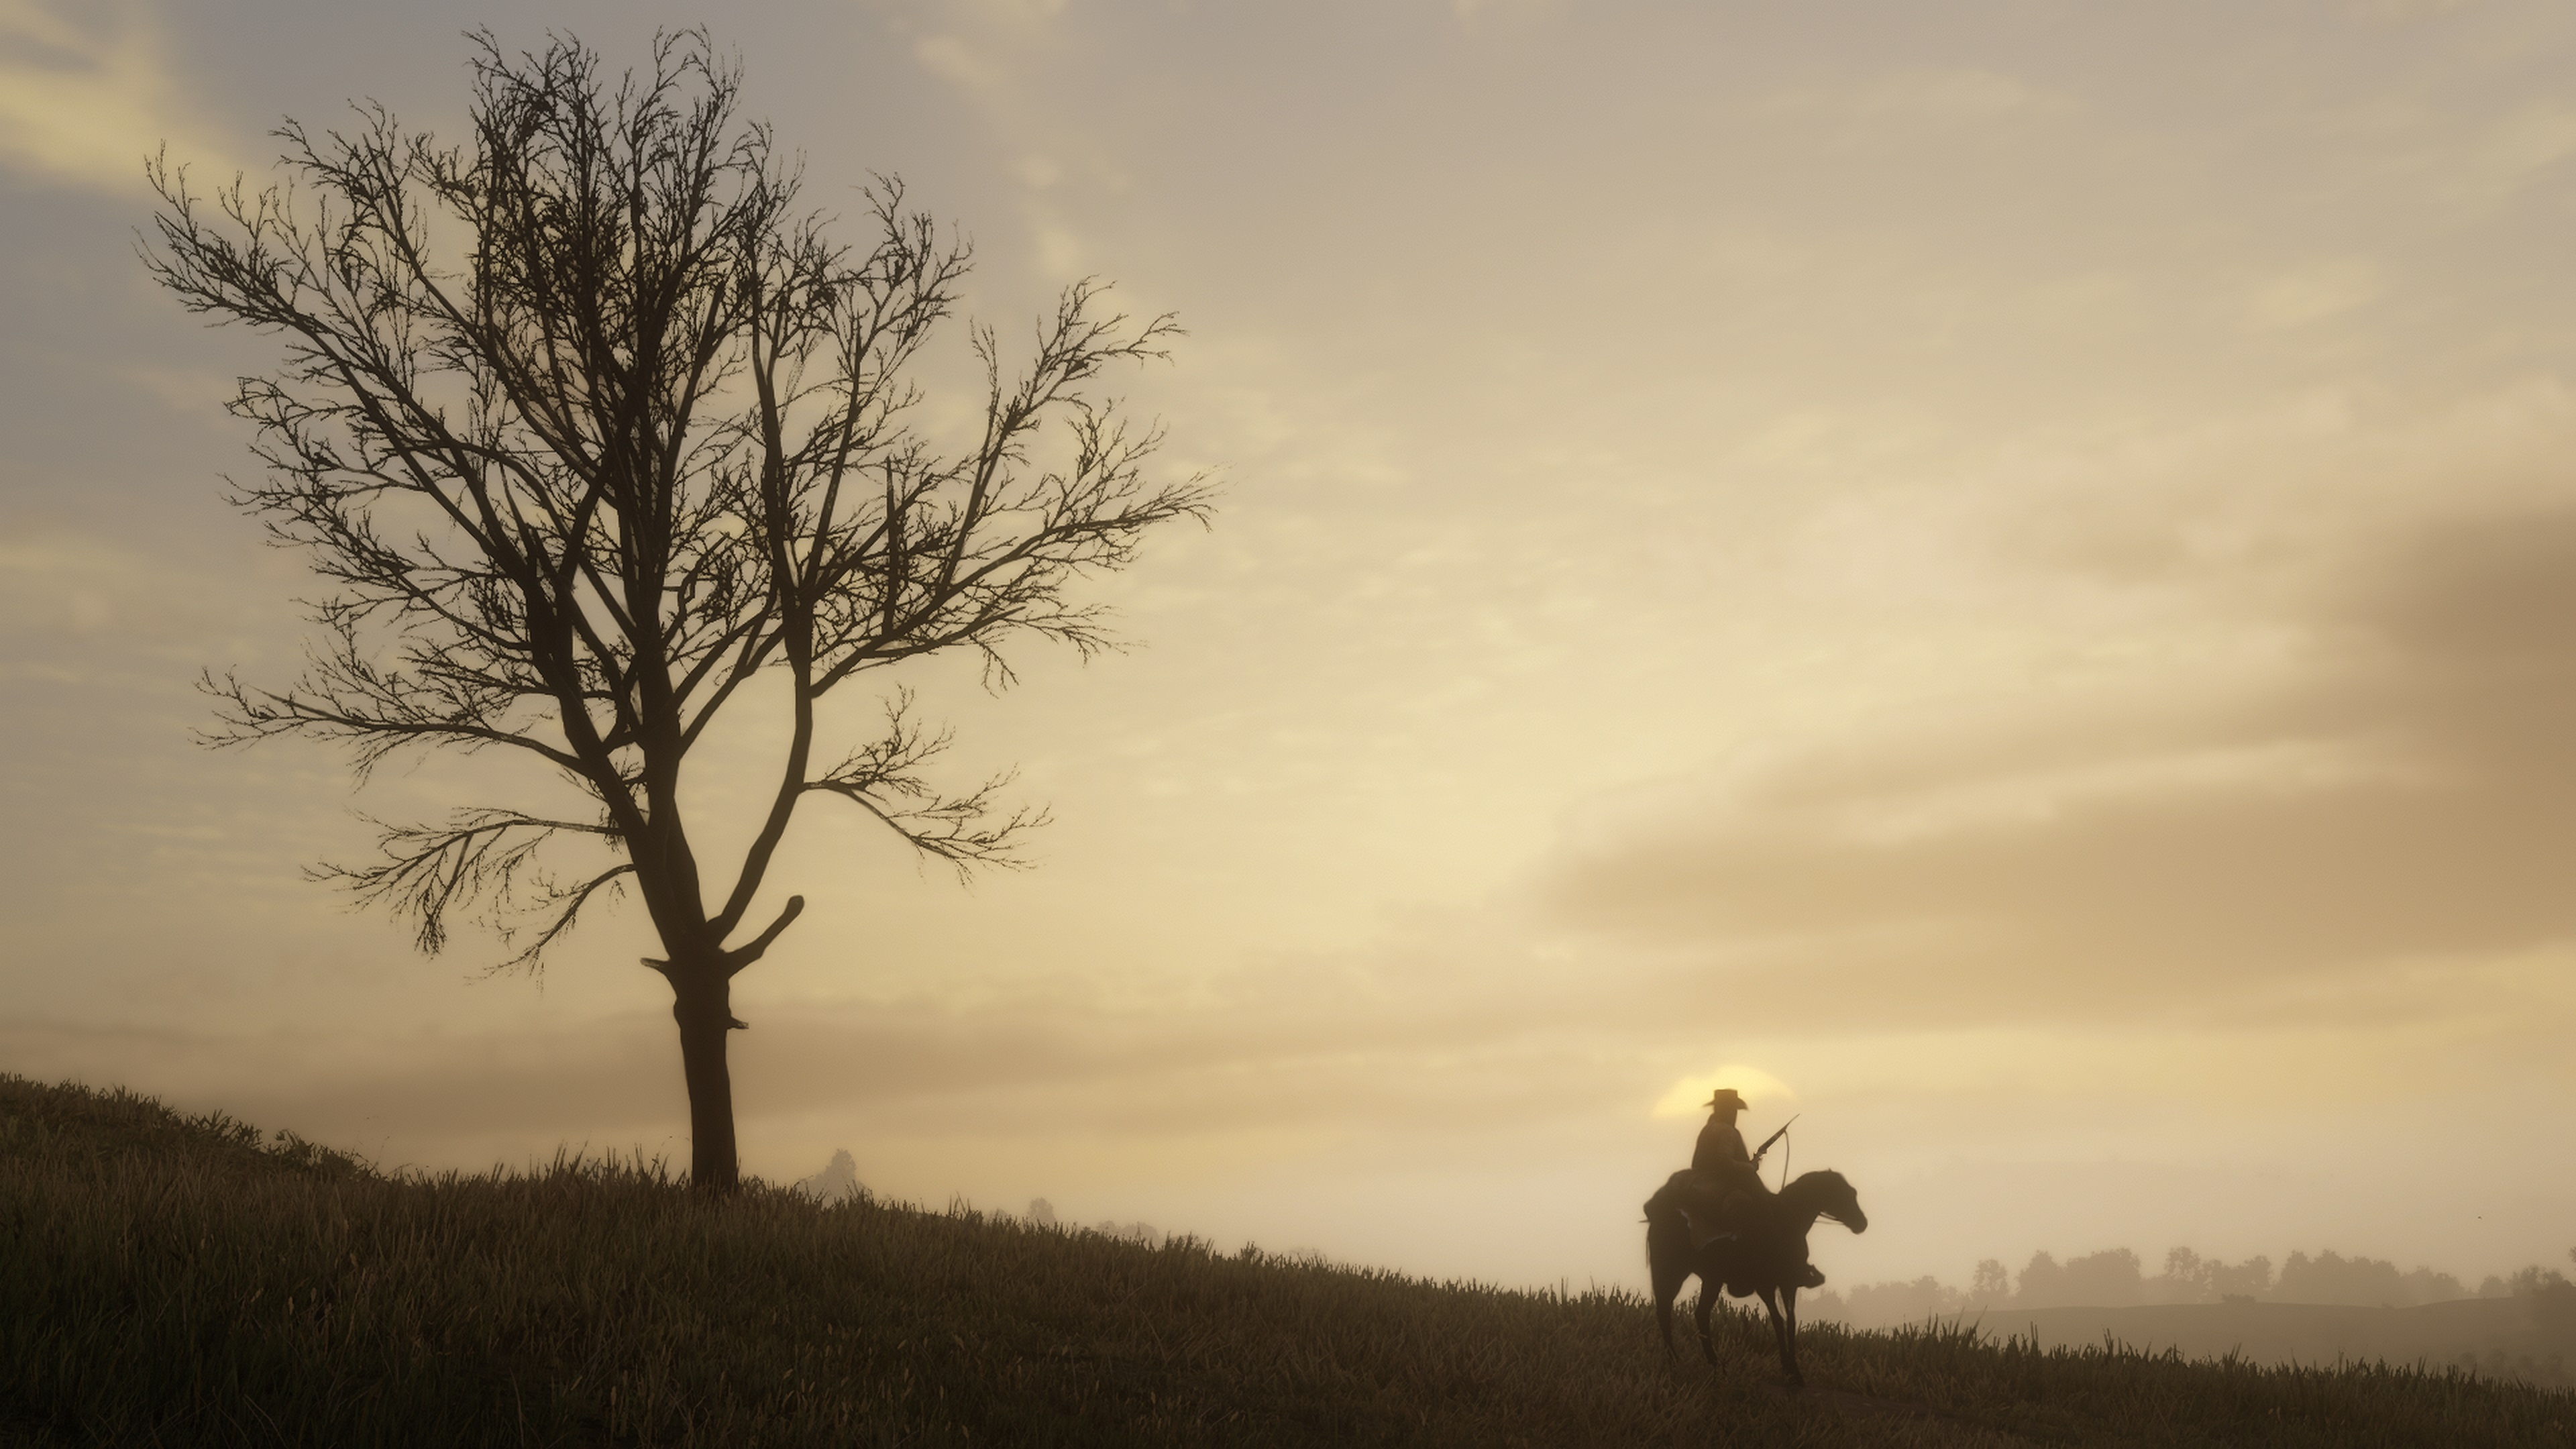 Red Dead Redemption 2 screenshot arbre et cavalier dans soleil couchant